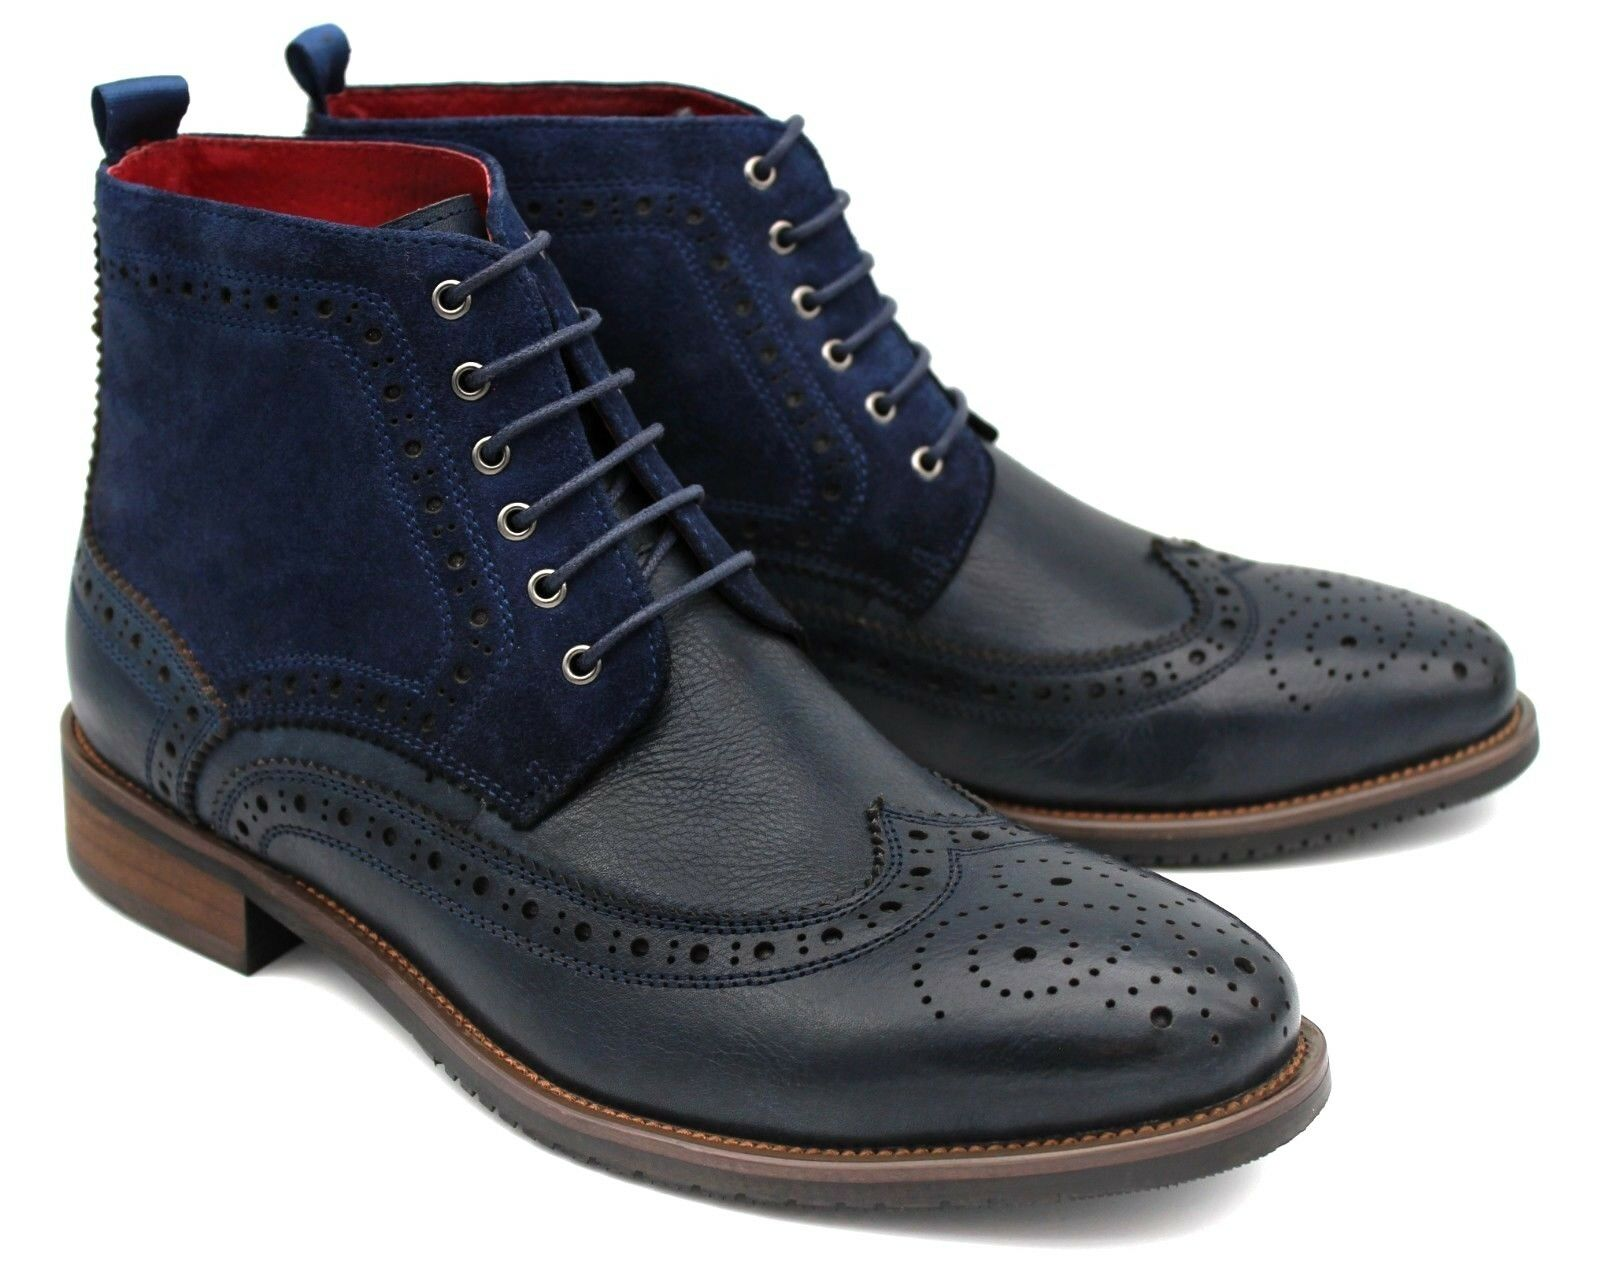 S51M UK 9 MENS NAVY blueE COMBAT BOOT LEATHER ANKLE MILITARY LACE UP BROGUE EU43